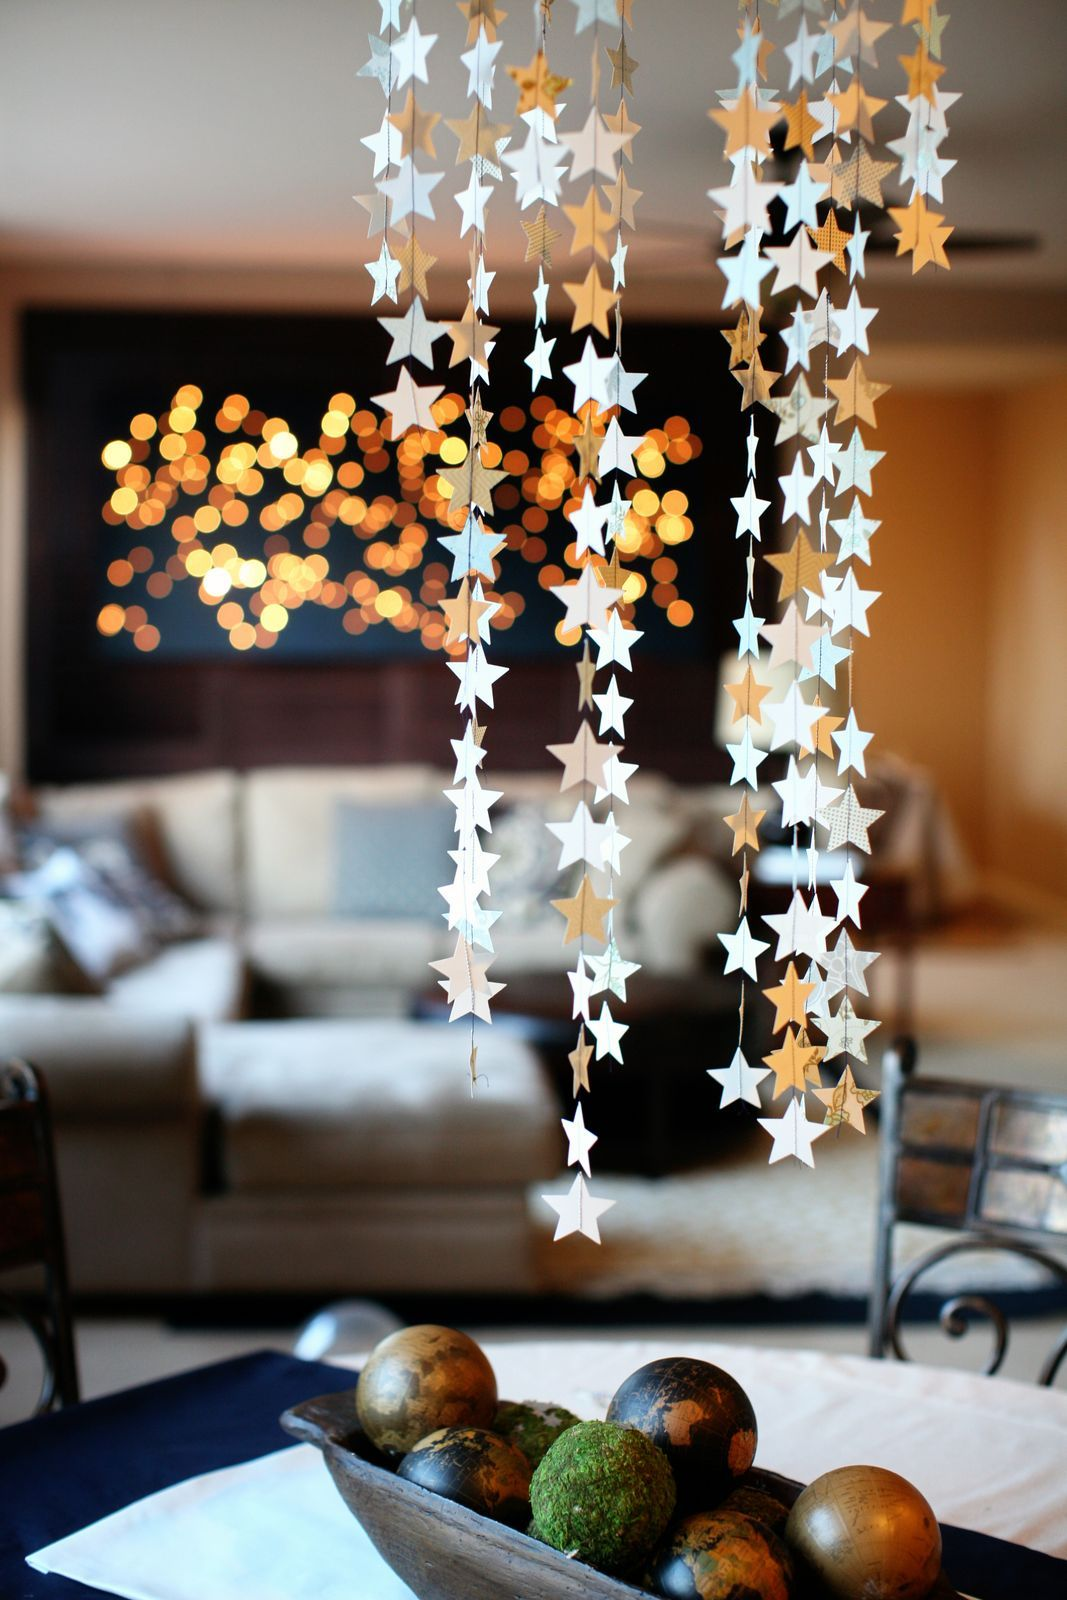 Decorative Stars For Parties I Love These Hanging Stars I Wish I Had A Punch So I Could Just